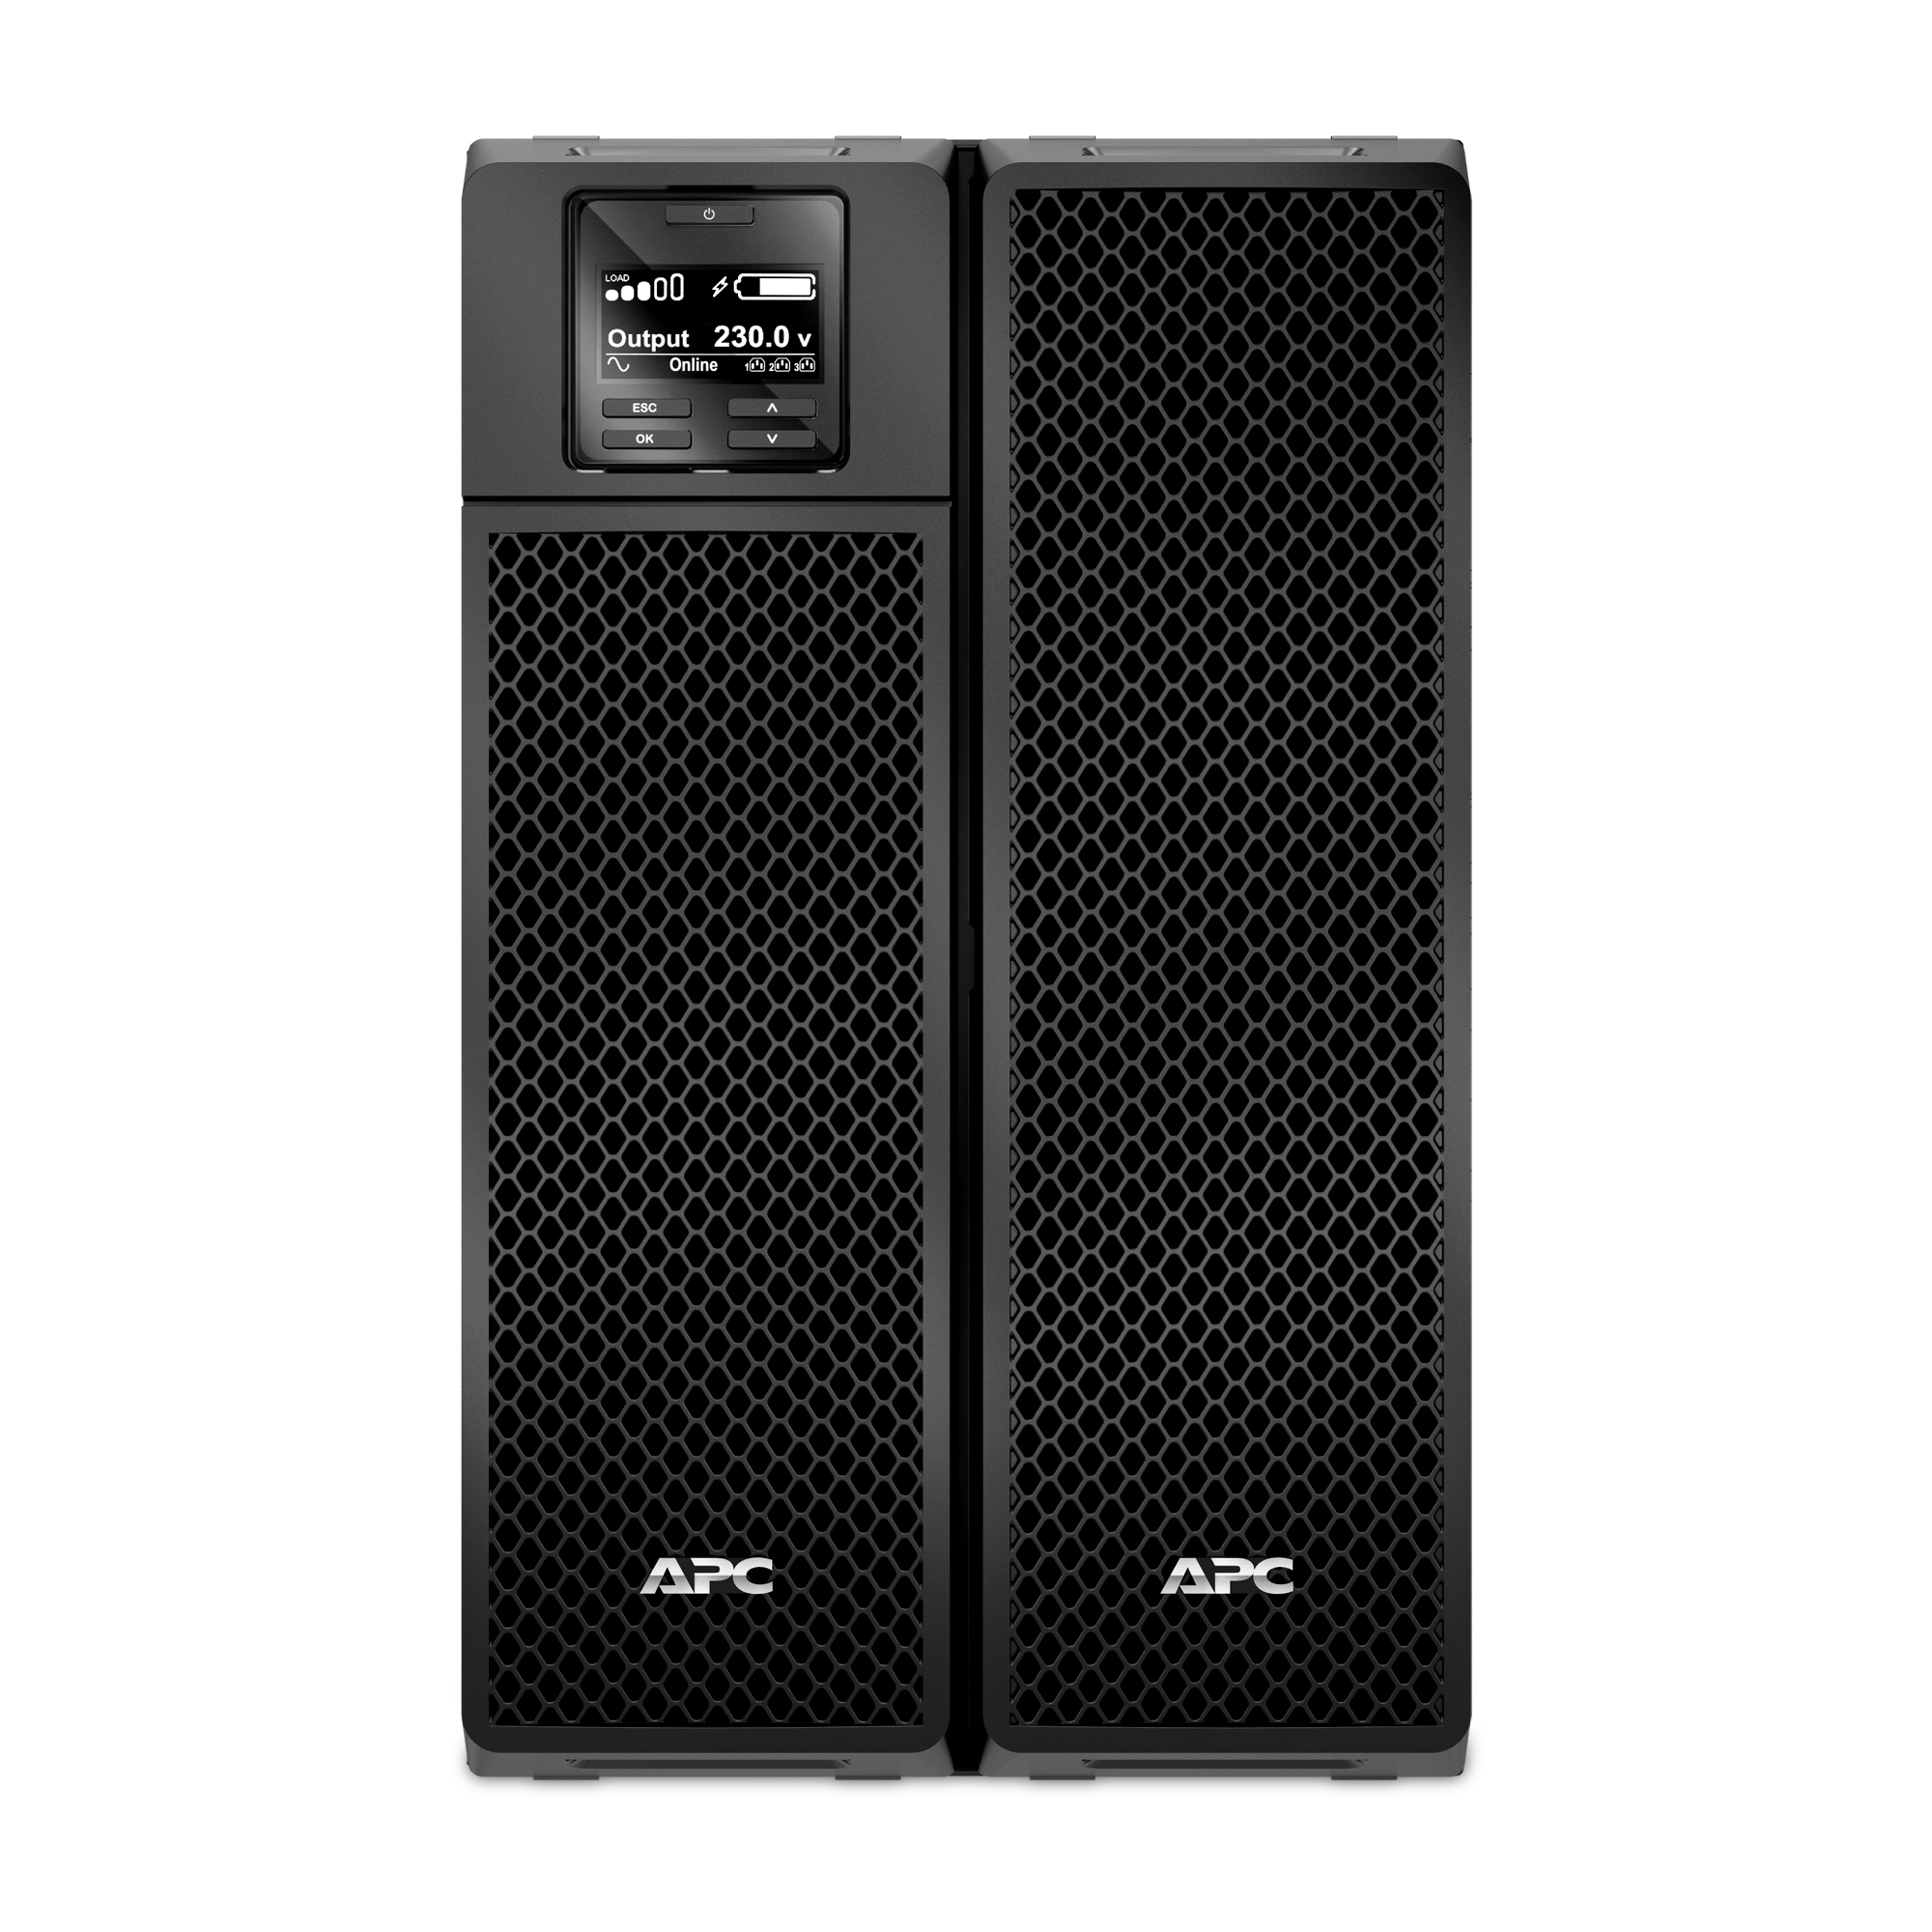 No-break inteligente SRT da APC, 10.000 VA e 230 V